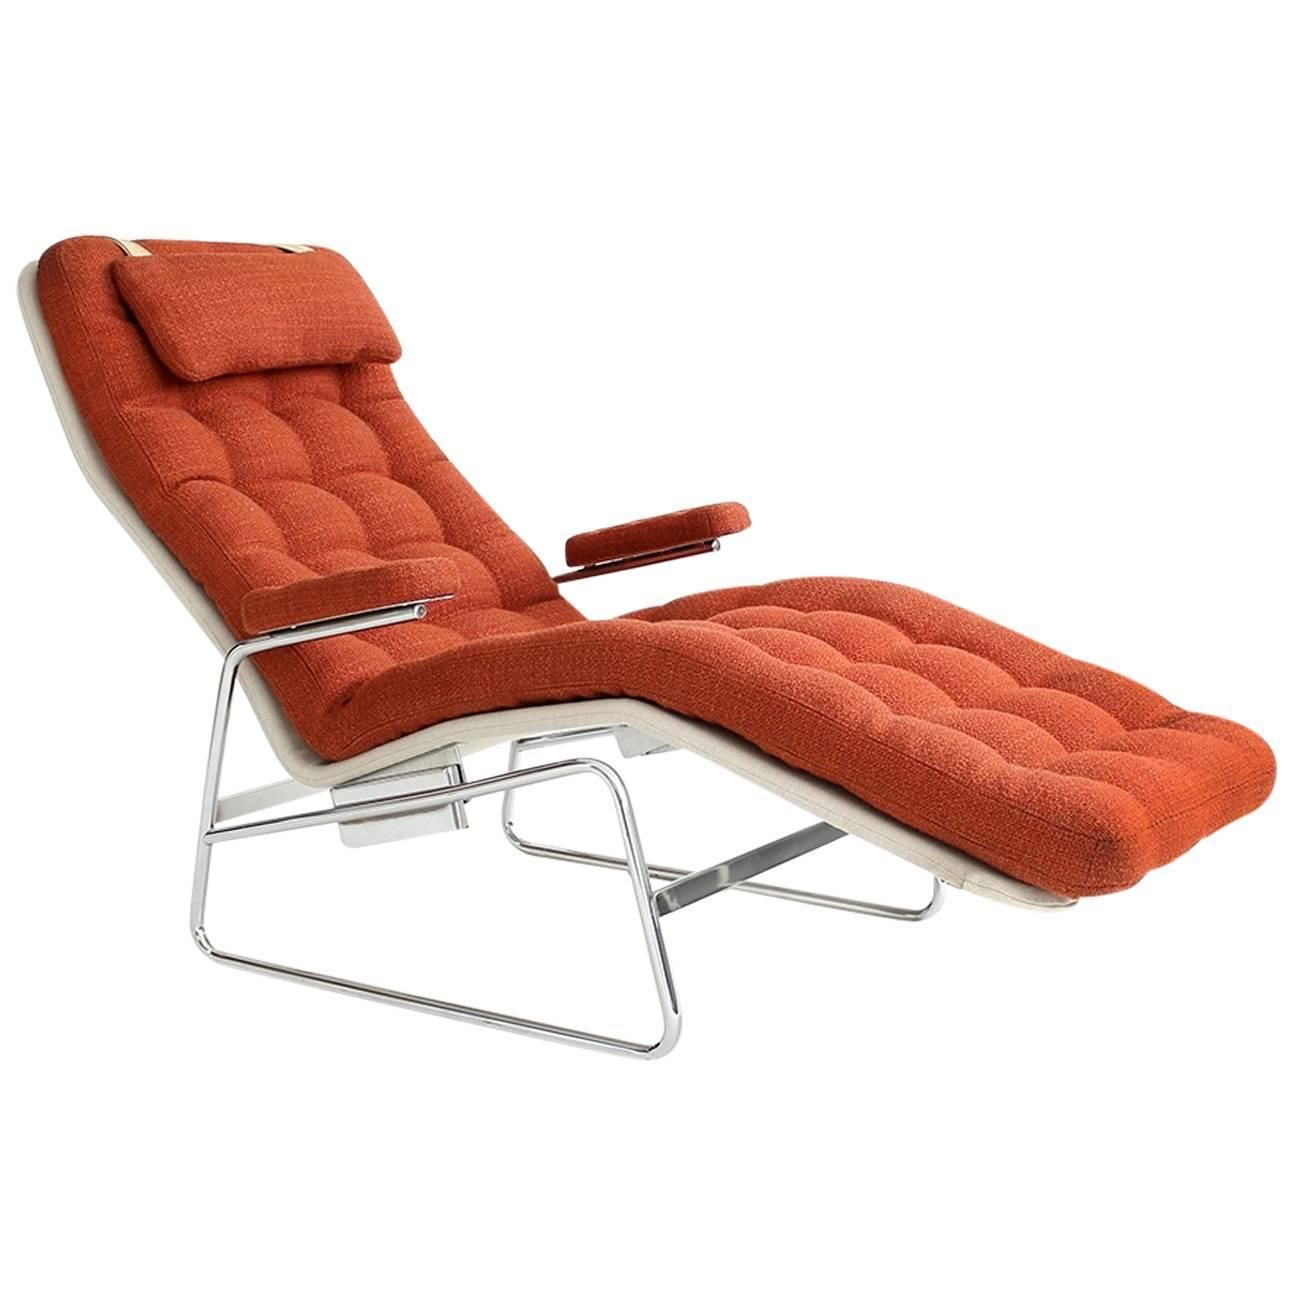 Sam Larsson Fenix Reclining Lounge Chair By Dux Lounge Chair Vintage Lounge Chair Chair